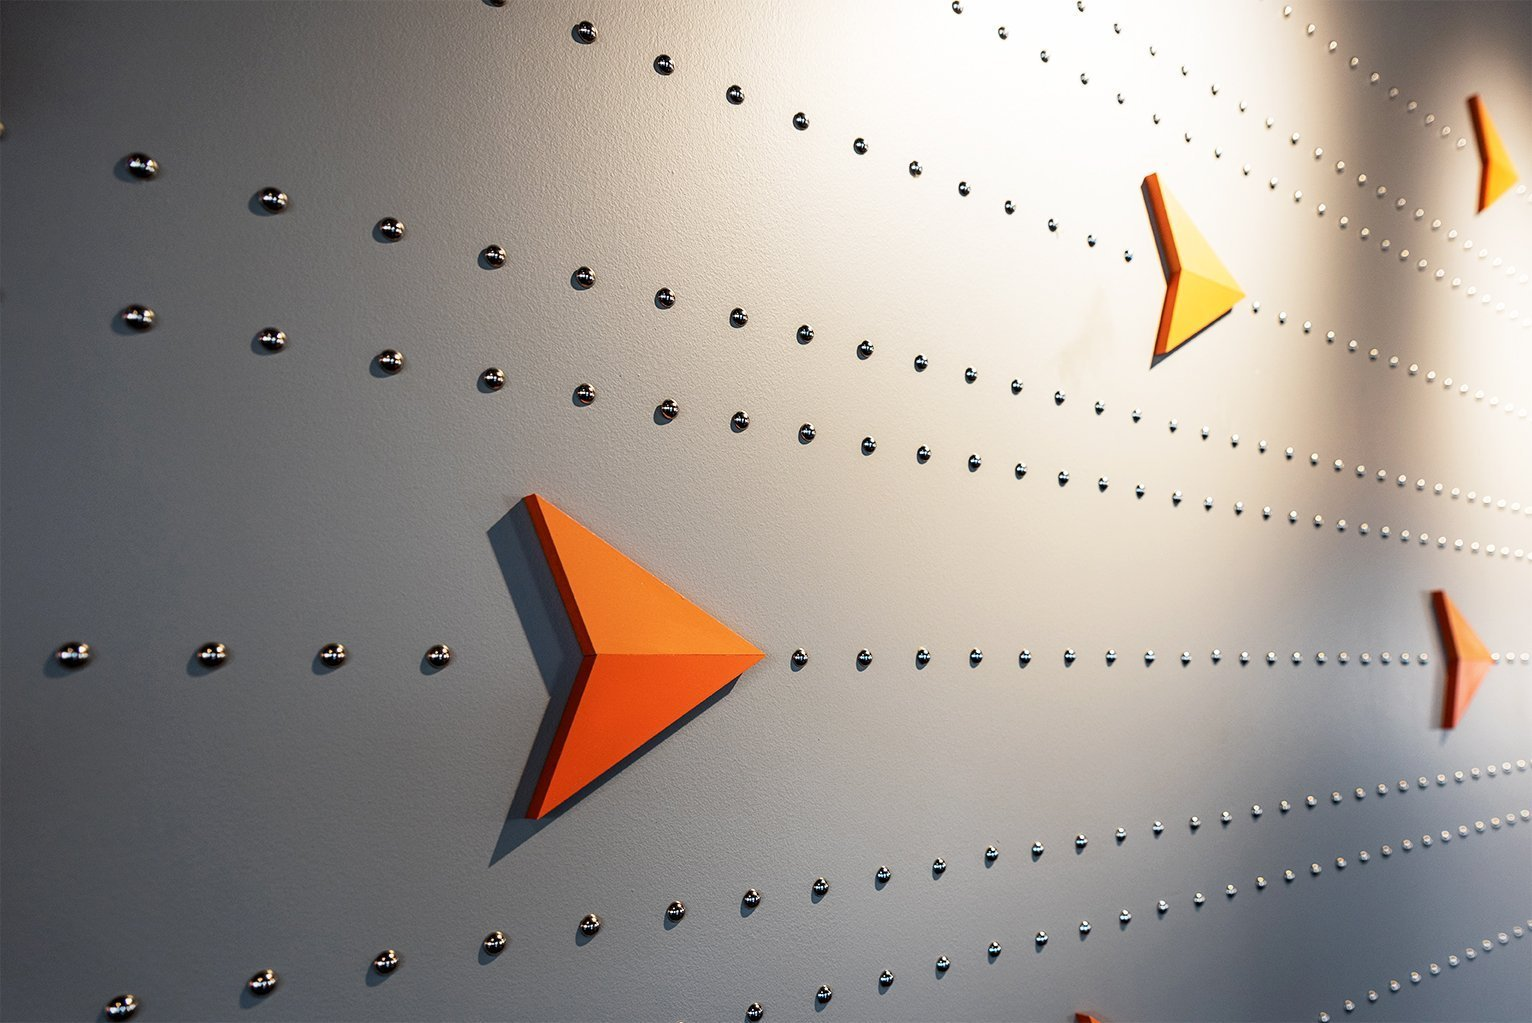 Close up of wall decoration showing the orange Up North arrow used in their logo in a linear pattern with lines of polished nail heads on a gray wall